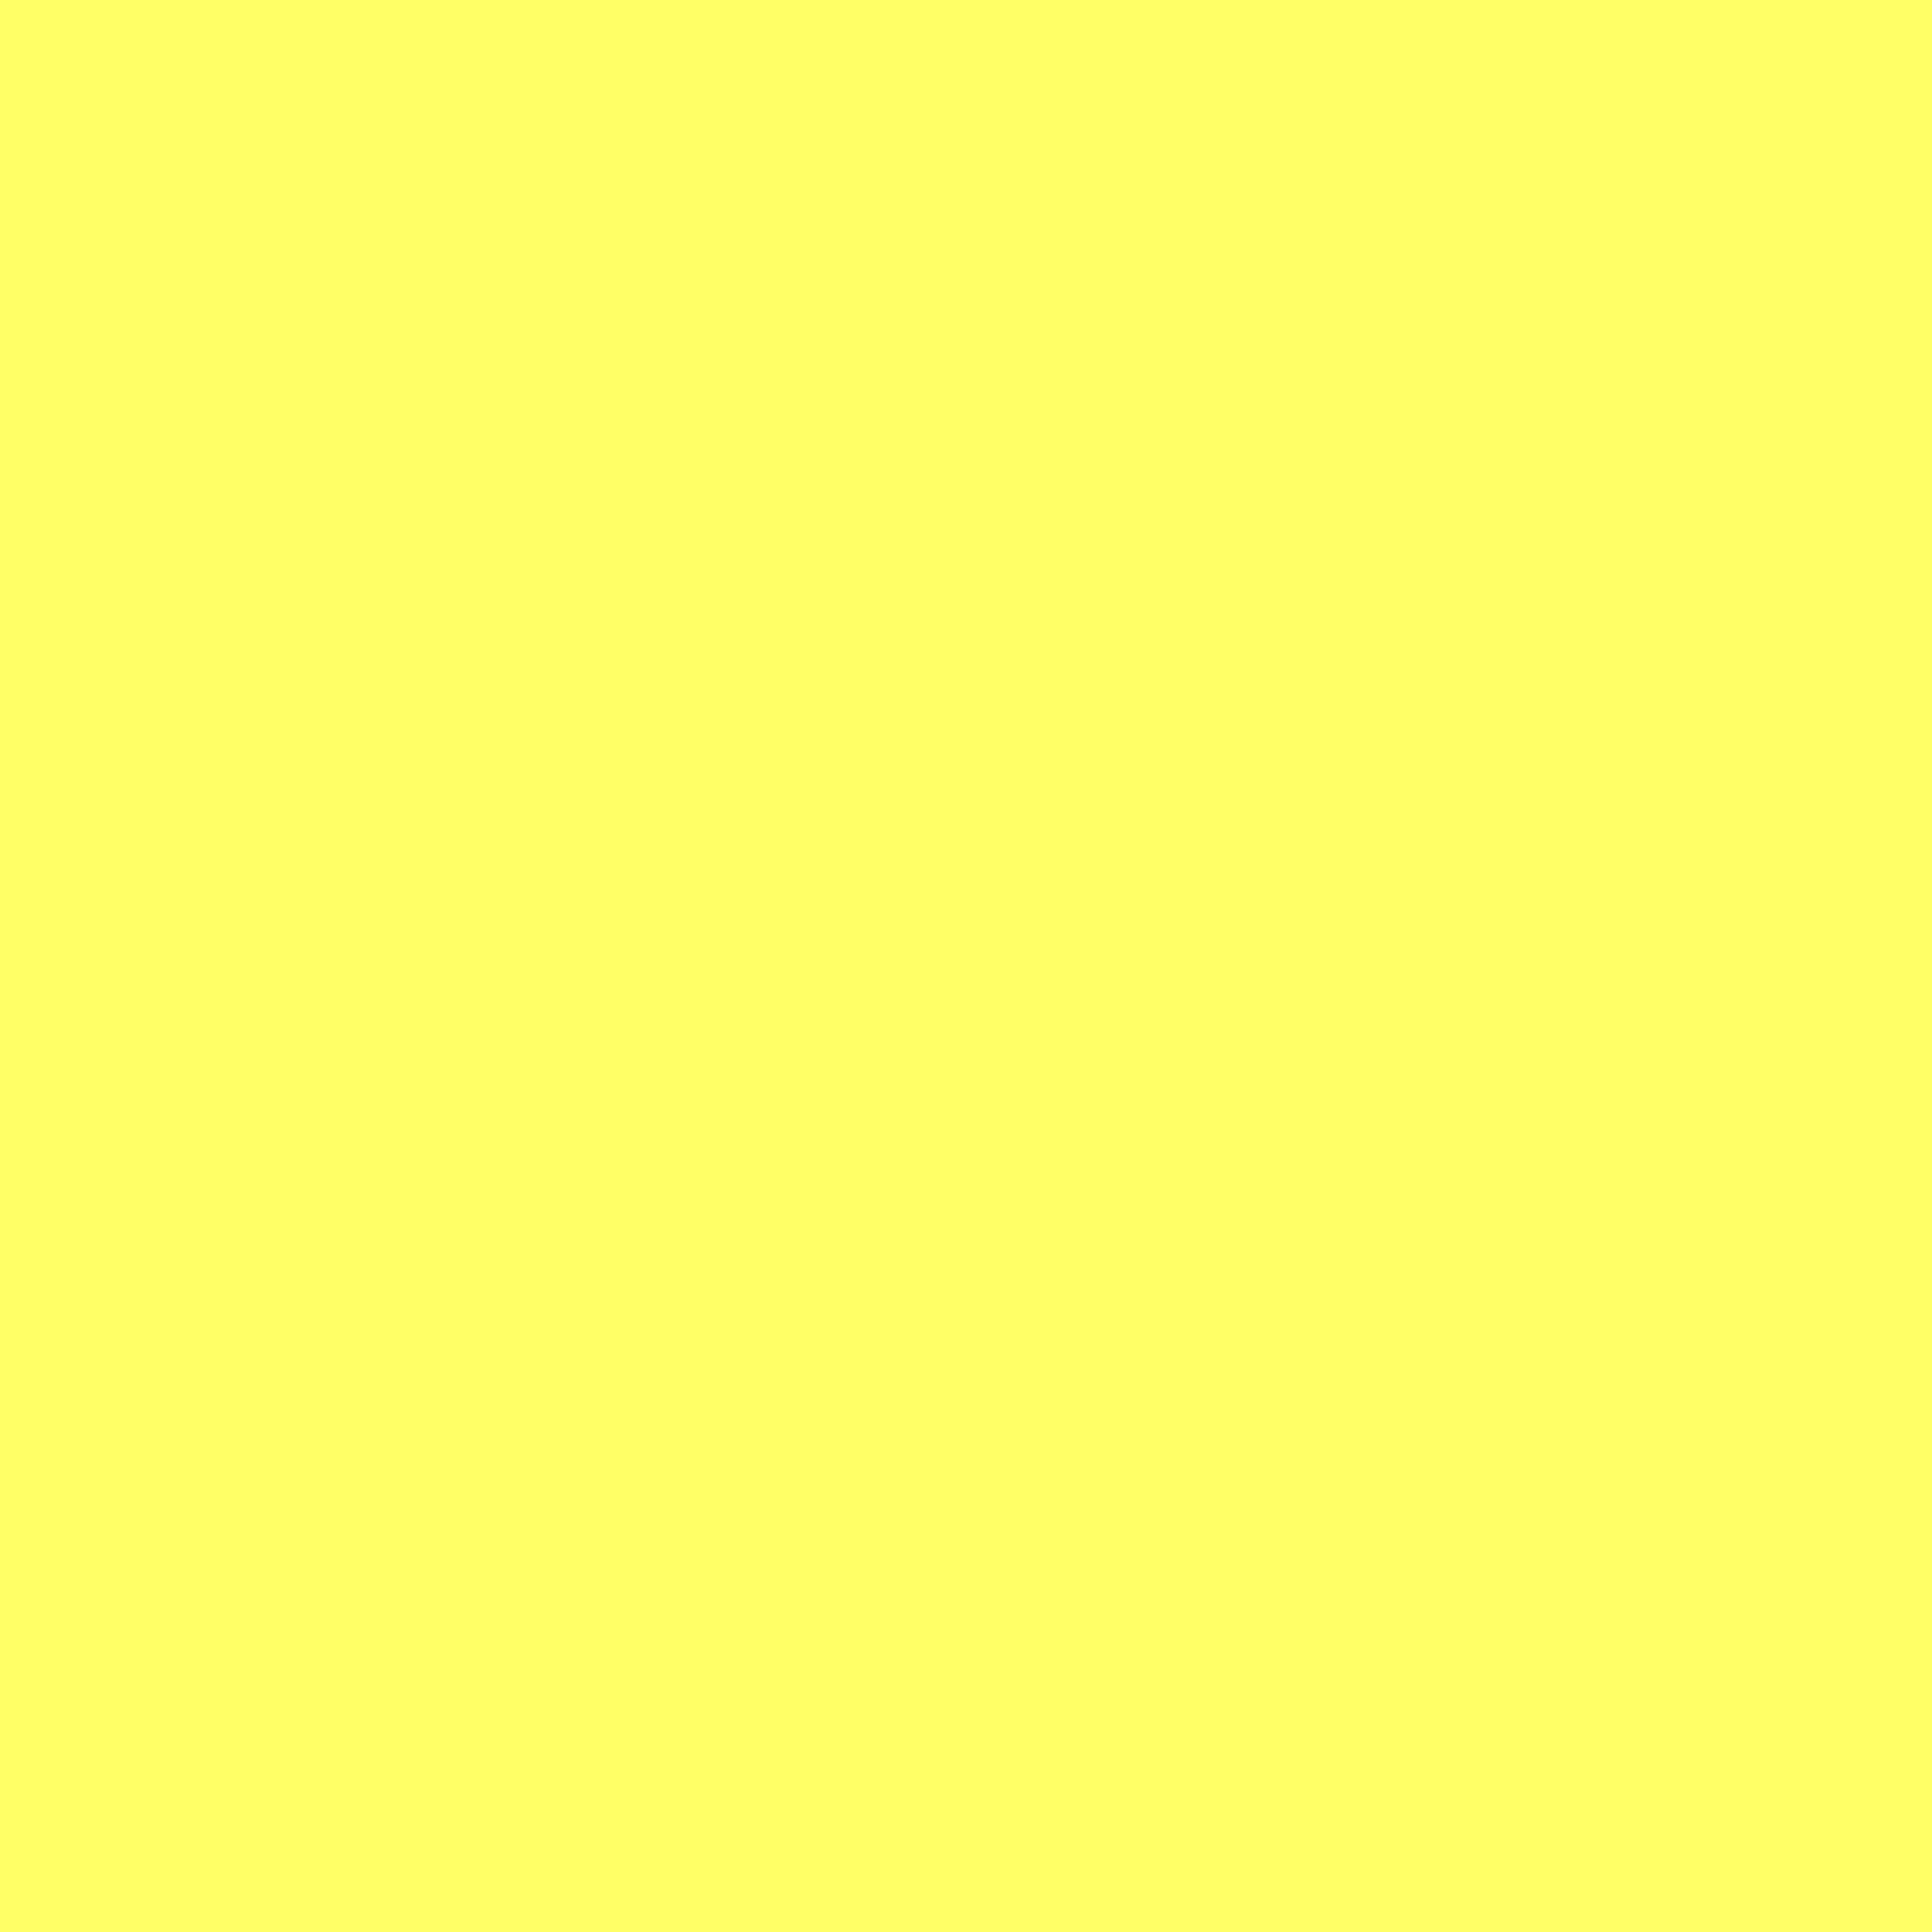 2732x2732 Unmellow Yellow Solid Color Background